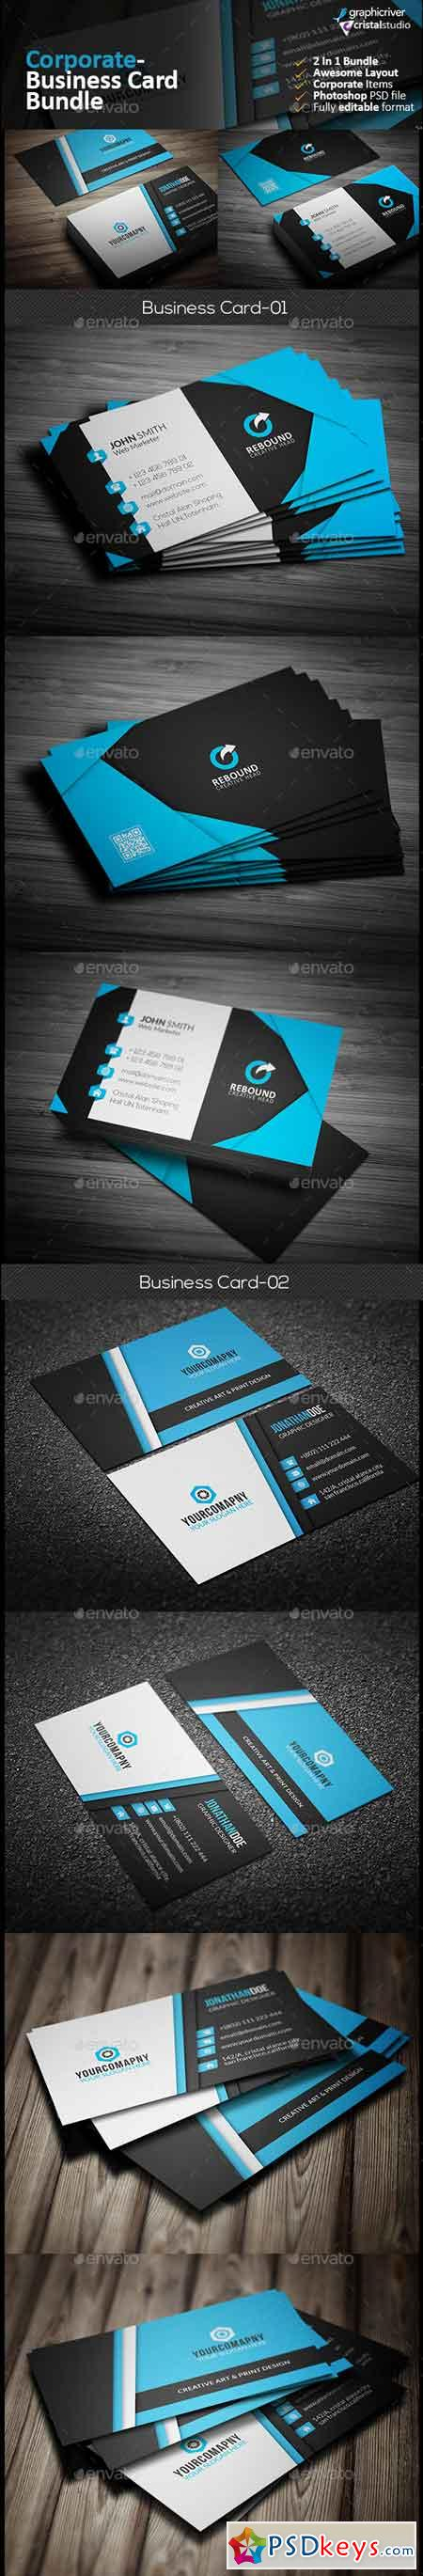 Business Card Bundle 2 in 1 13344214 » Free Download Photoshop ...